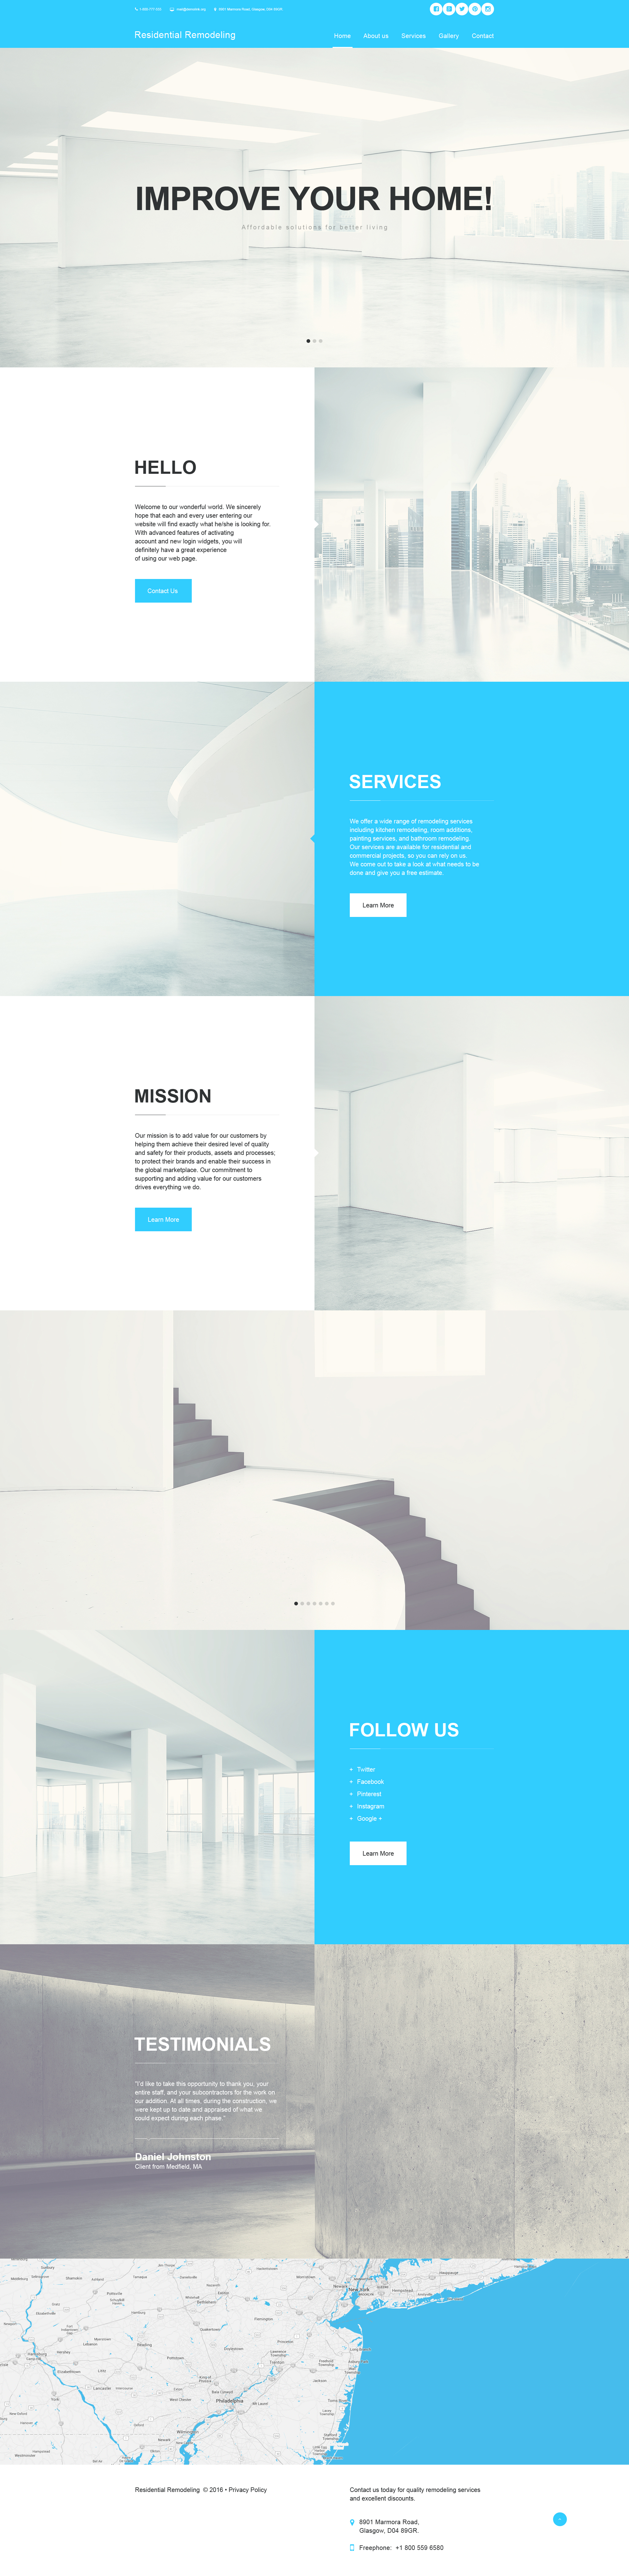 Home Remodeling Muse Template Home Design Software Renovation